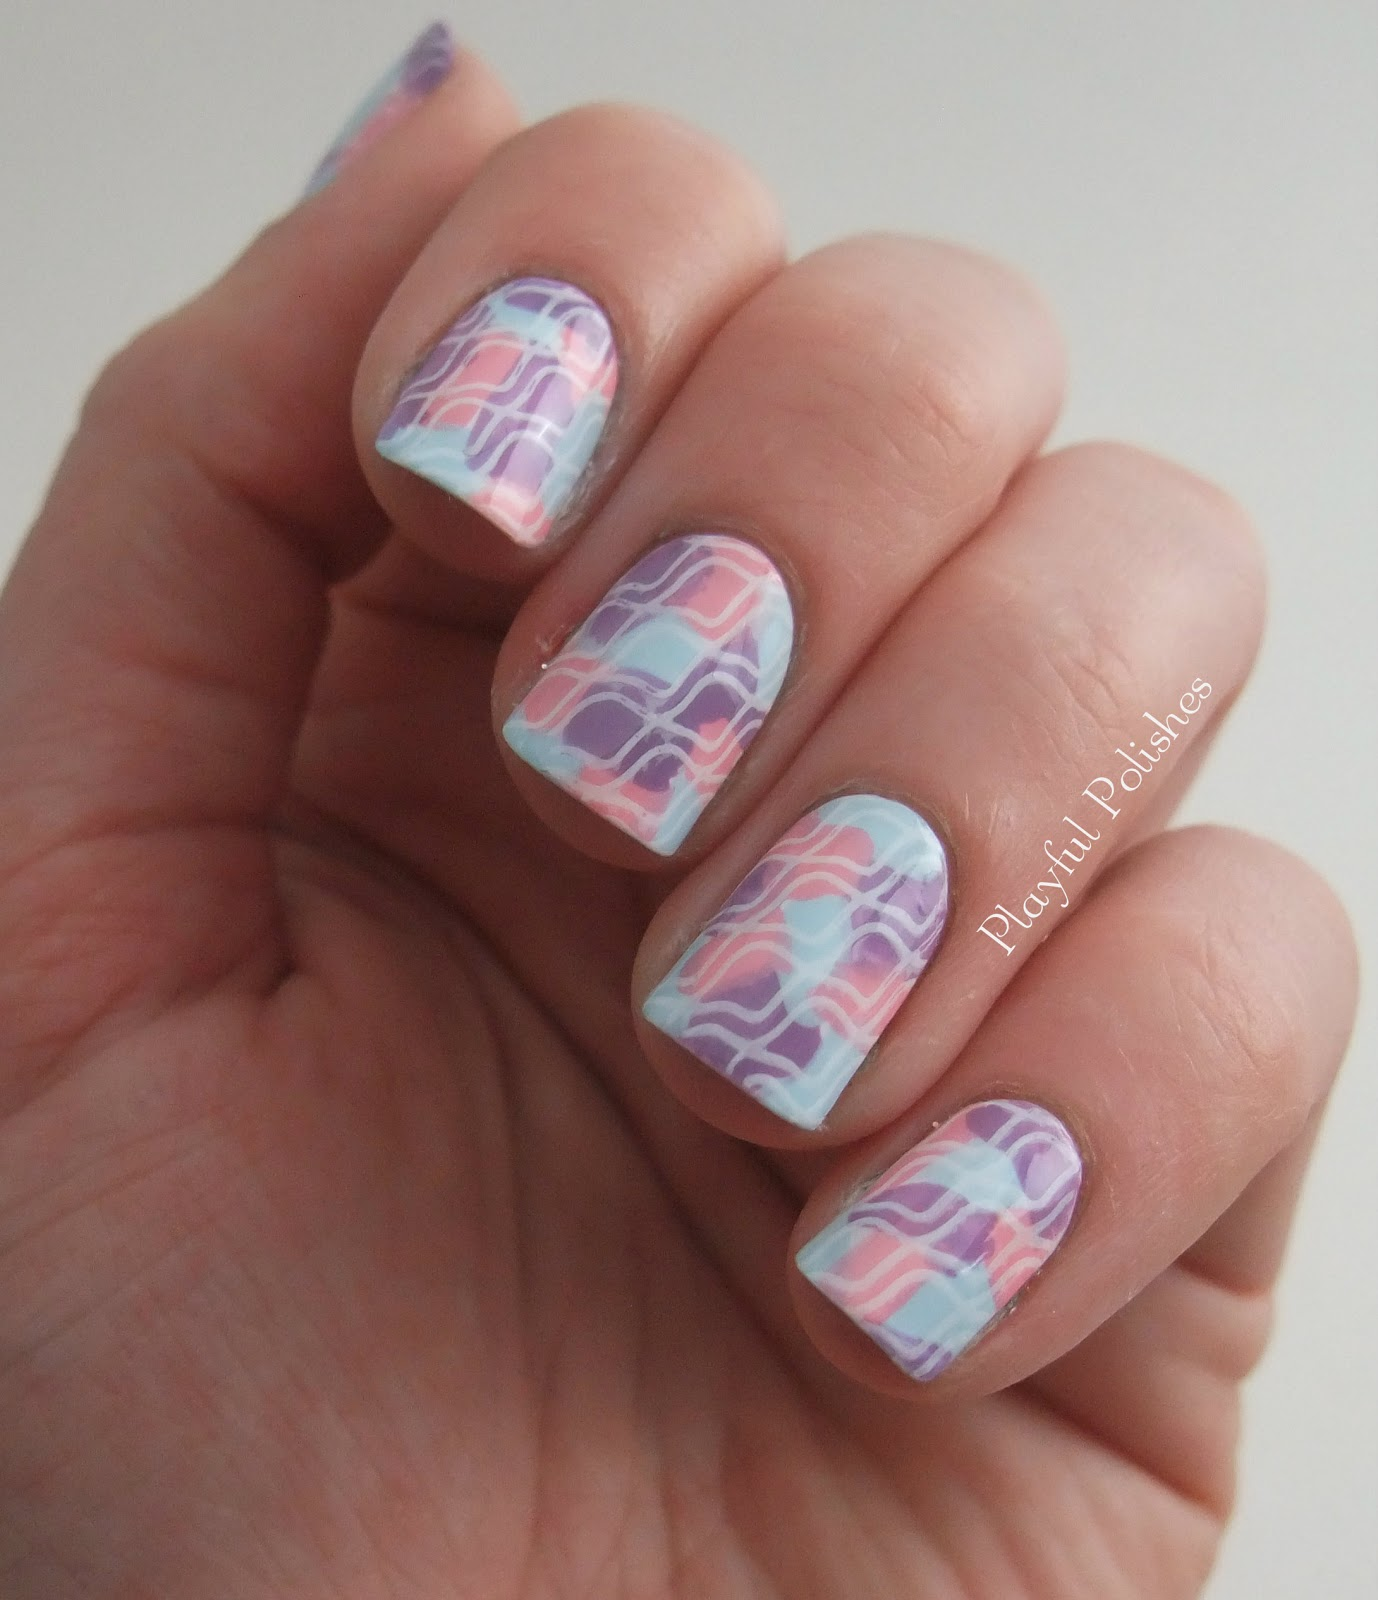 Playful Polishes January Nail Art Challenge Day 7